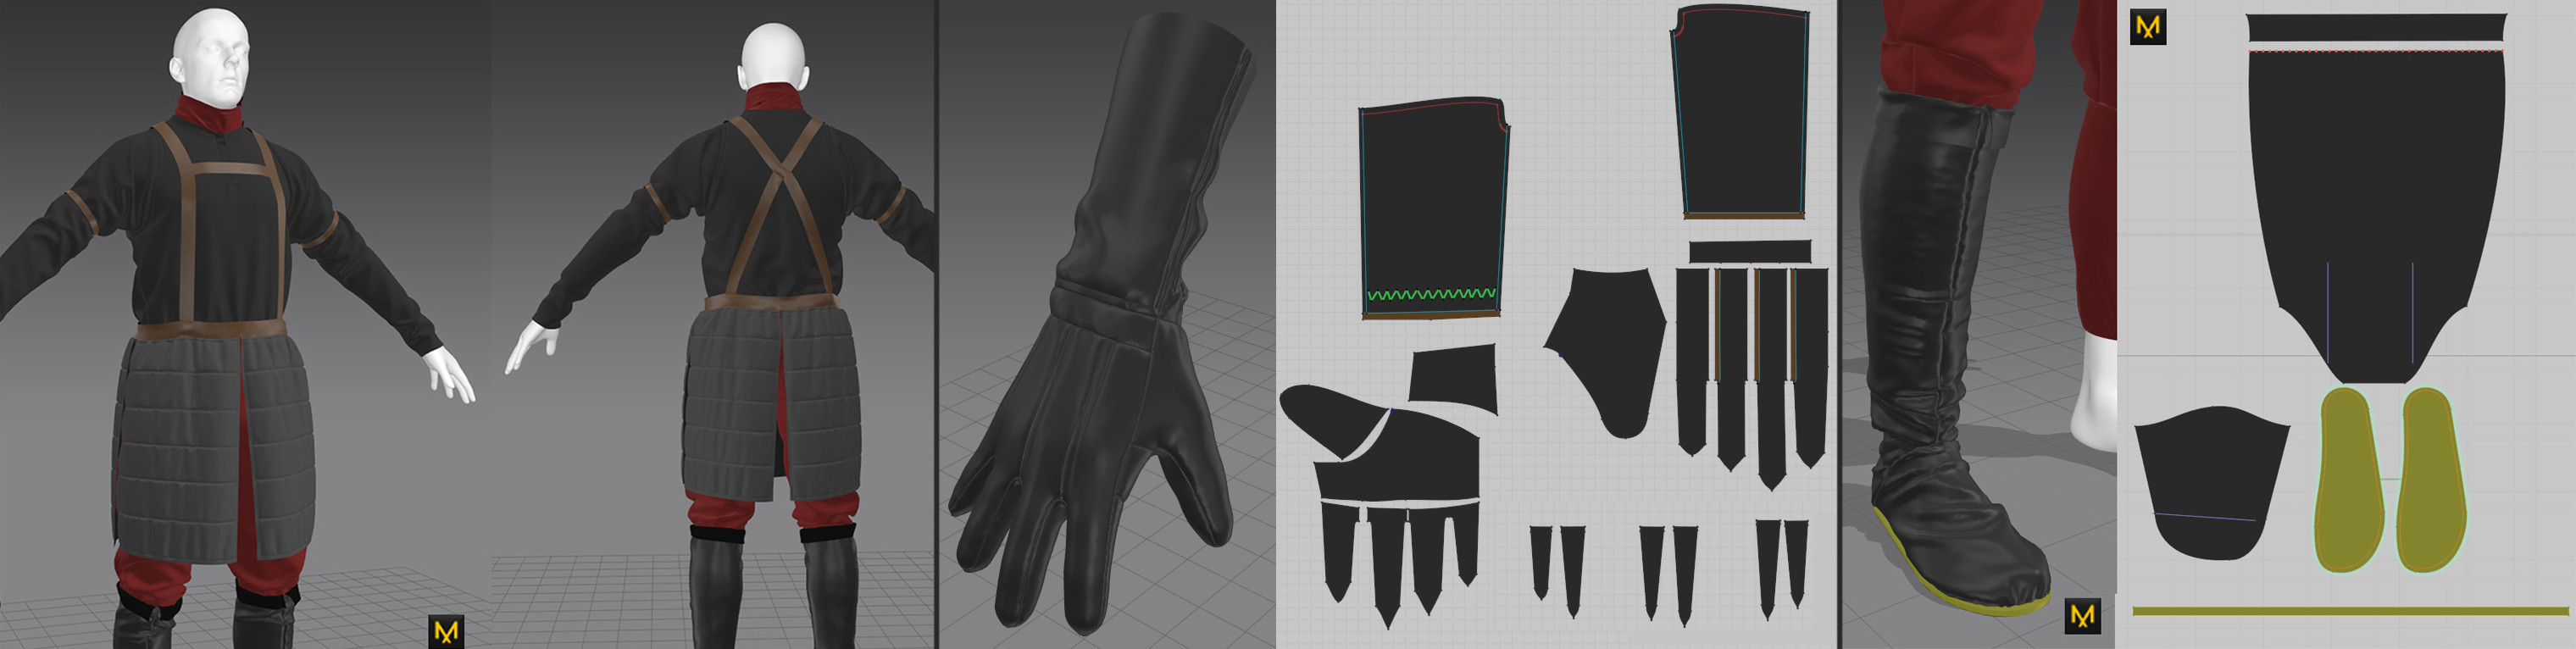 All of the garments were created in Marvelous Designer. Gloves were based on my own real life I wear in winter so it was a great experience replicating them based on a draft.